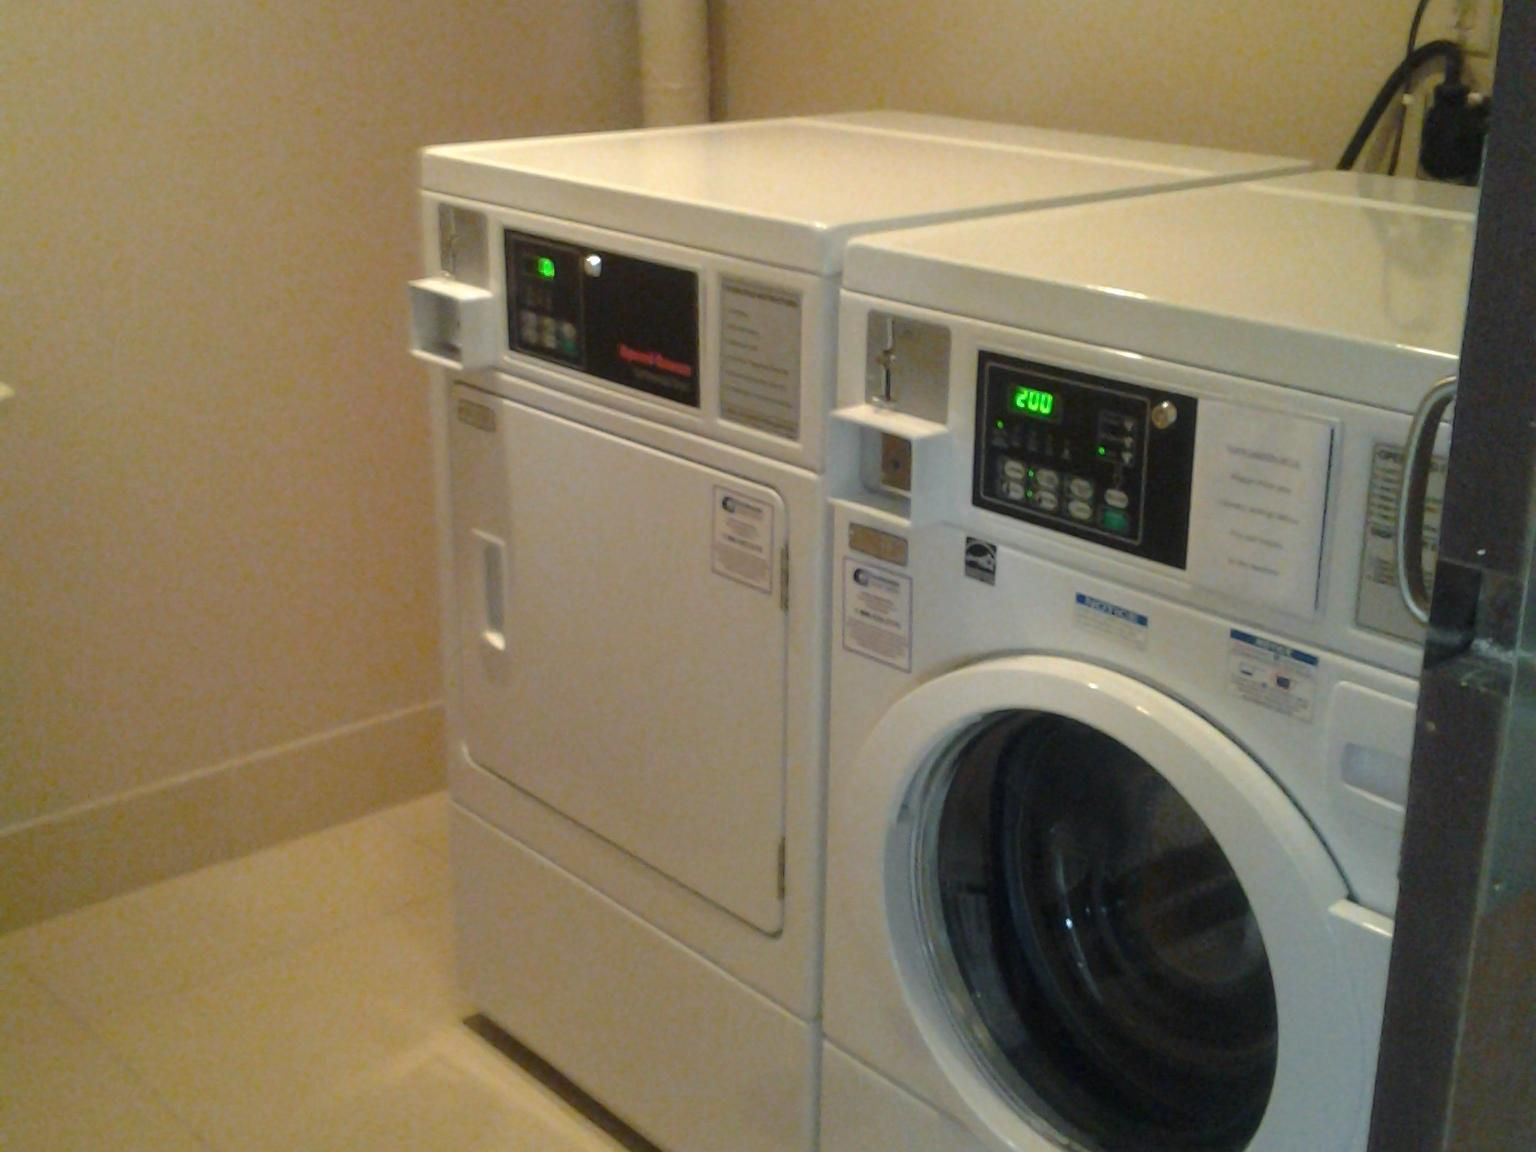 Holiday Inn Express Waterfront Mall Guest Laundry